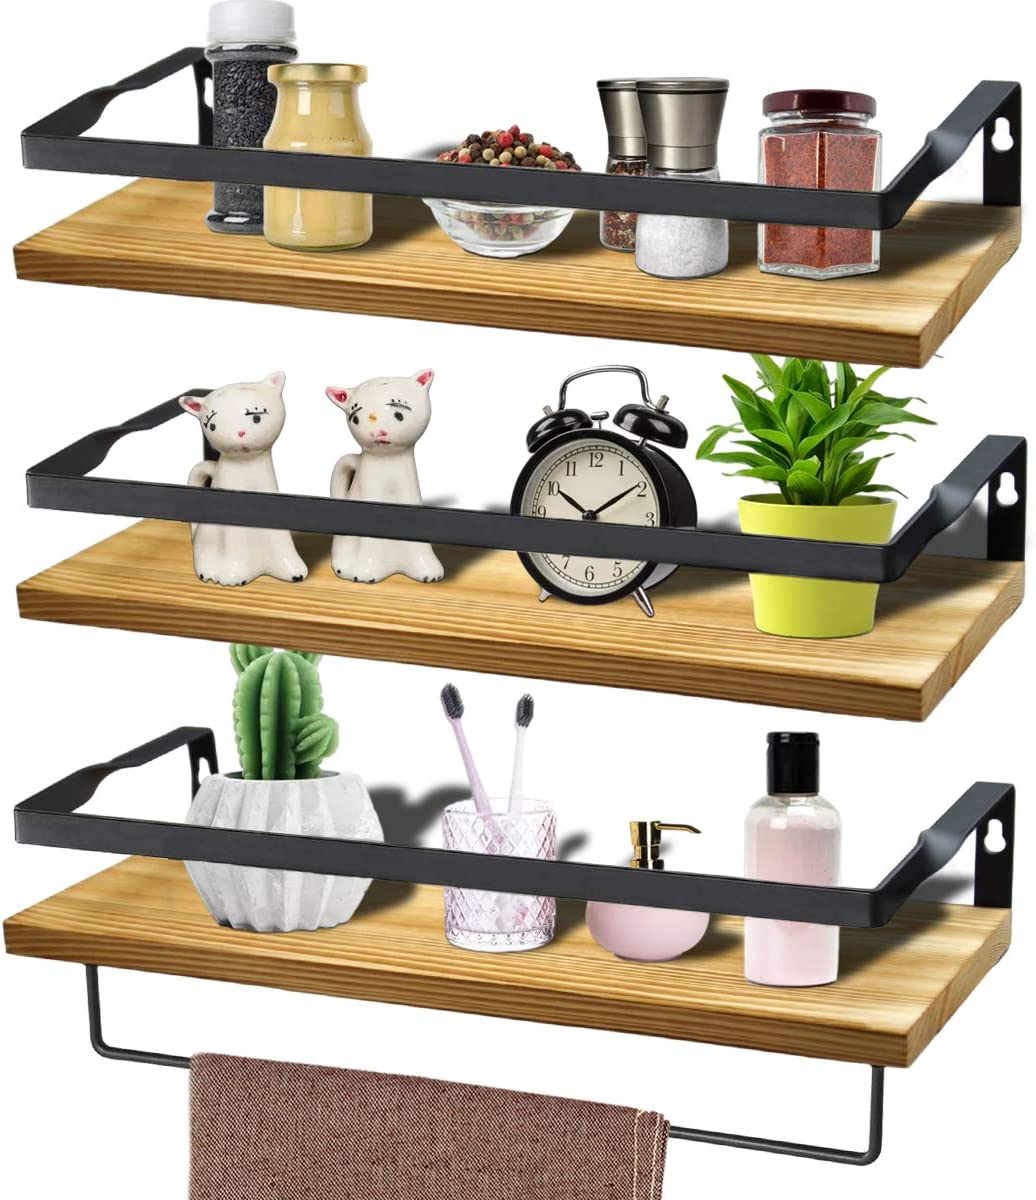 MLCINI Floating Shelves Wall Max 64% OFF Mutifunctional San Diego Mall for